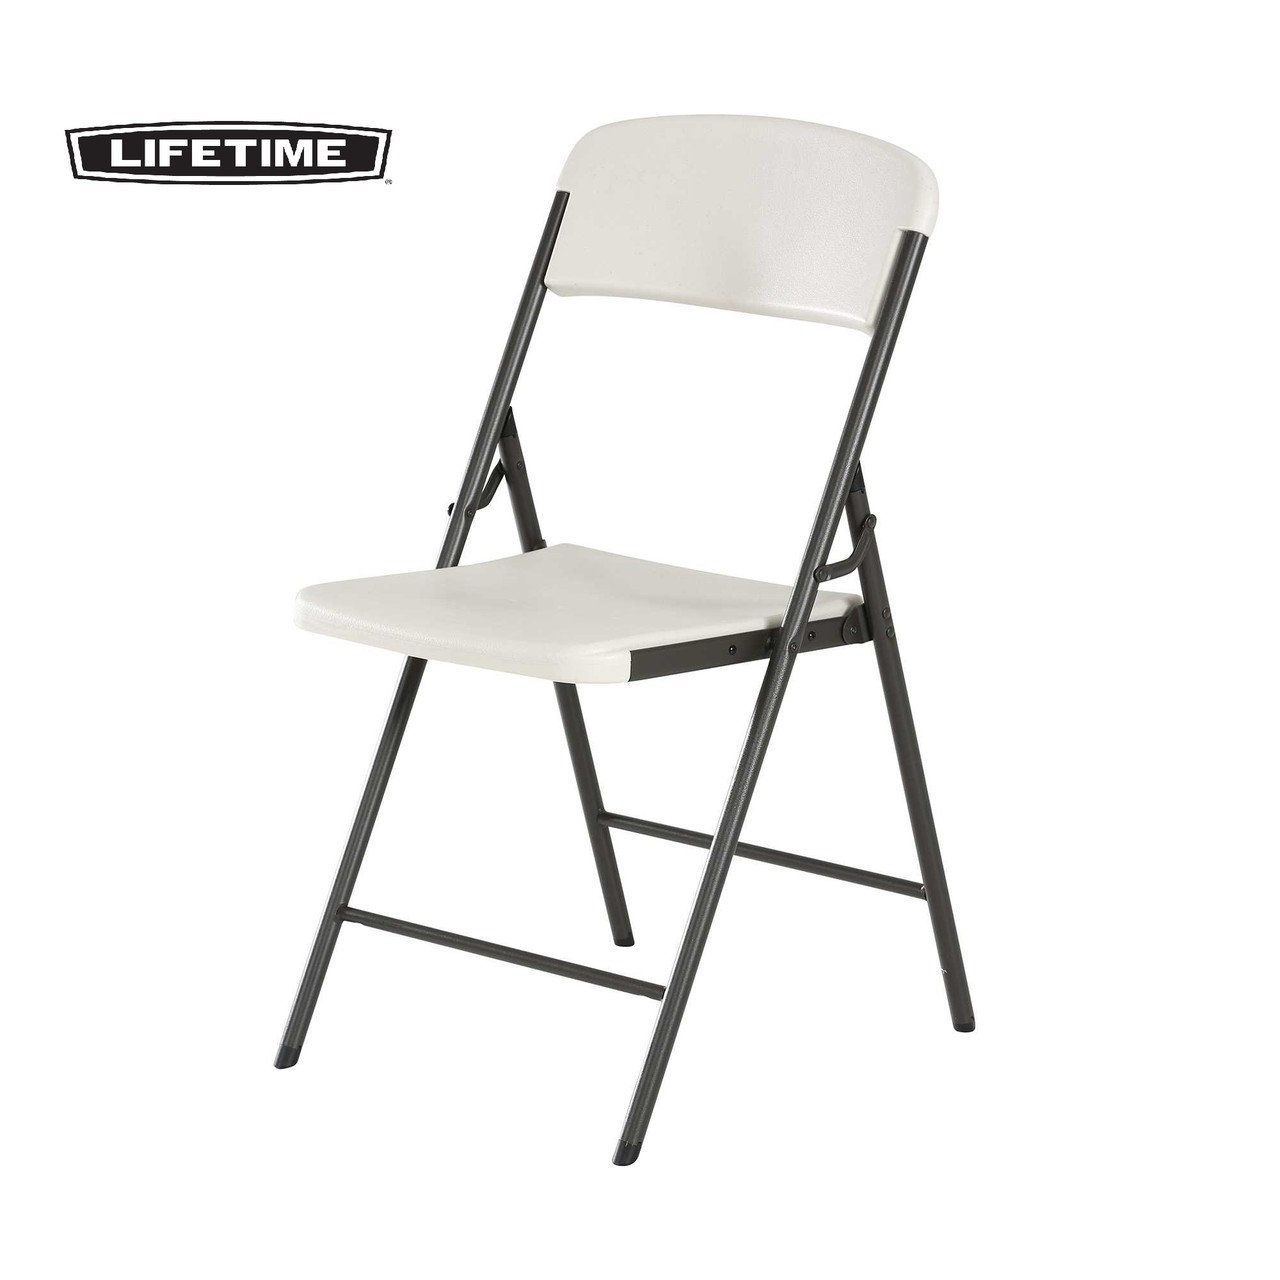 Lifetime Chair Lifetime Party Chair